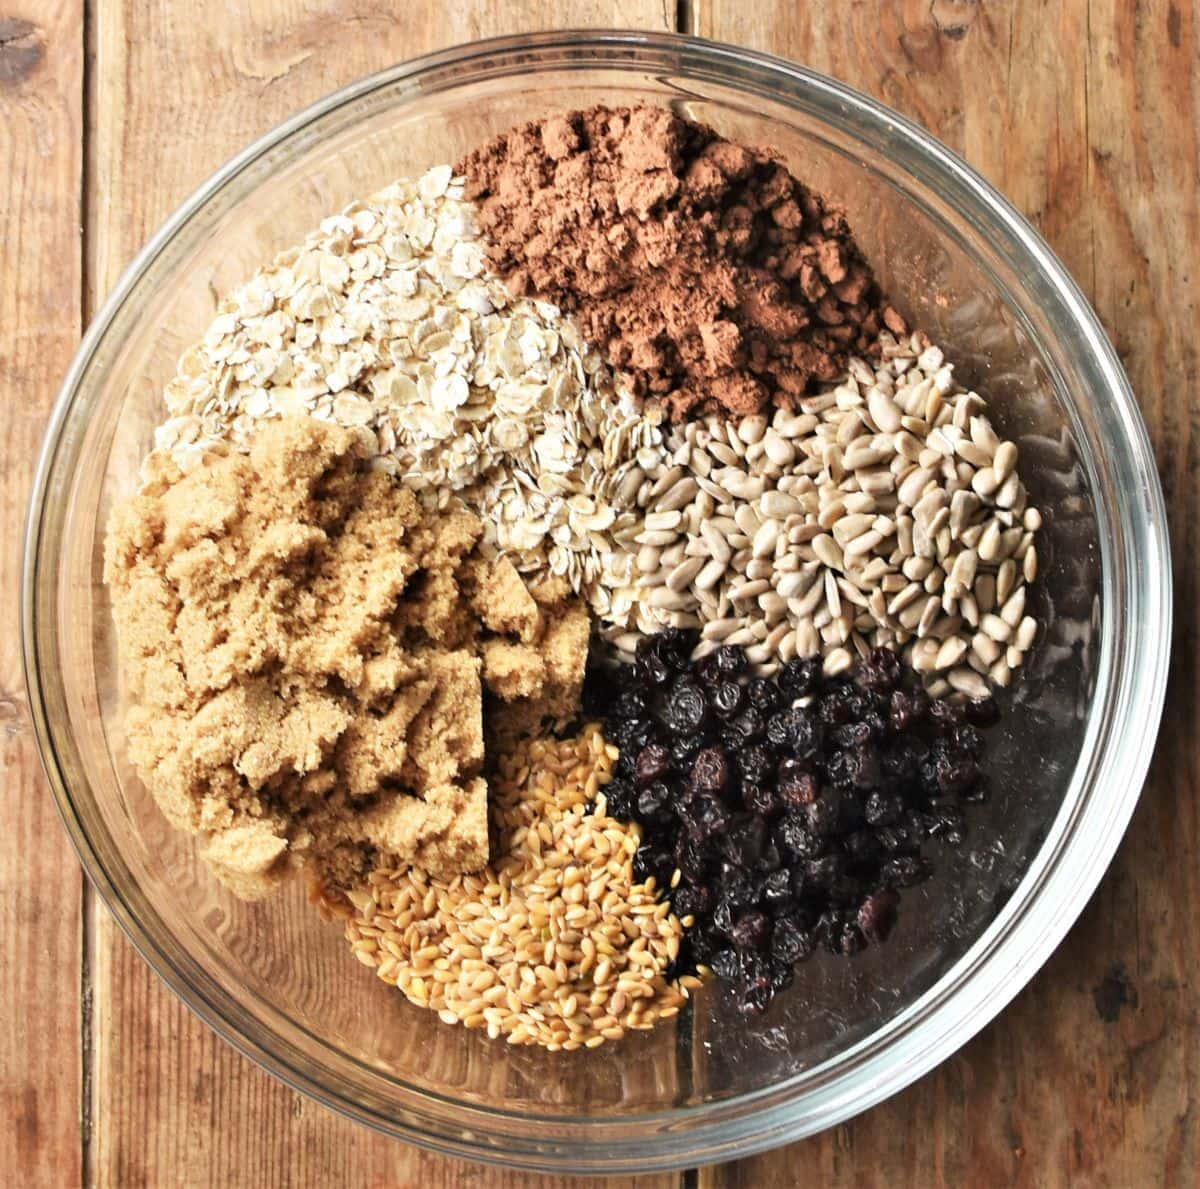 Chocolate oatmeal cookies ingredients in mixing bowl.